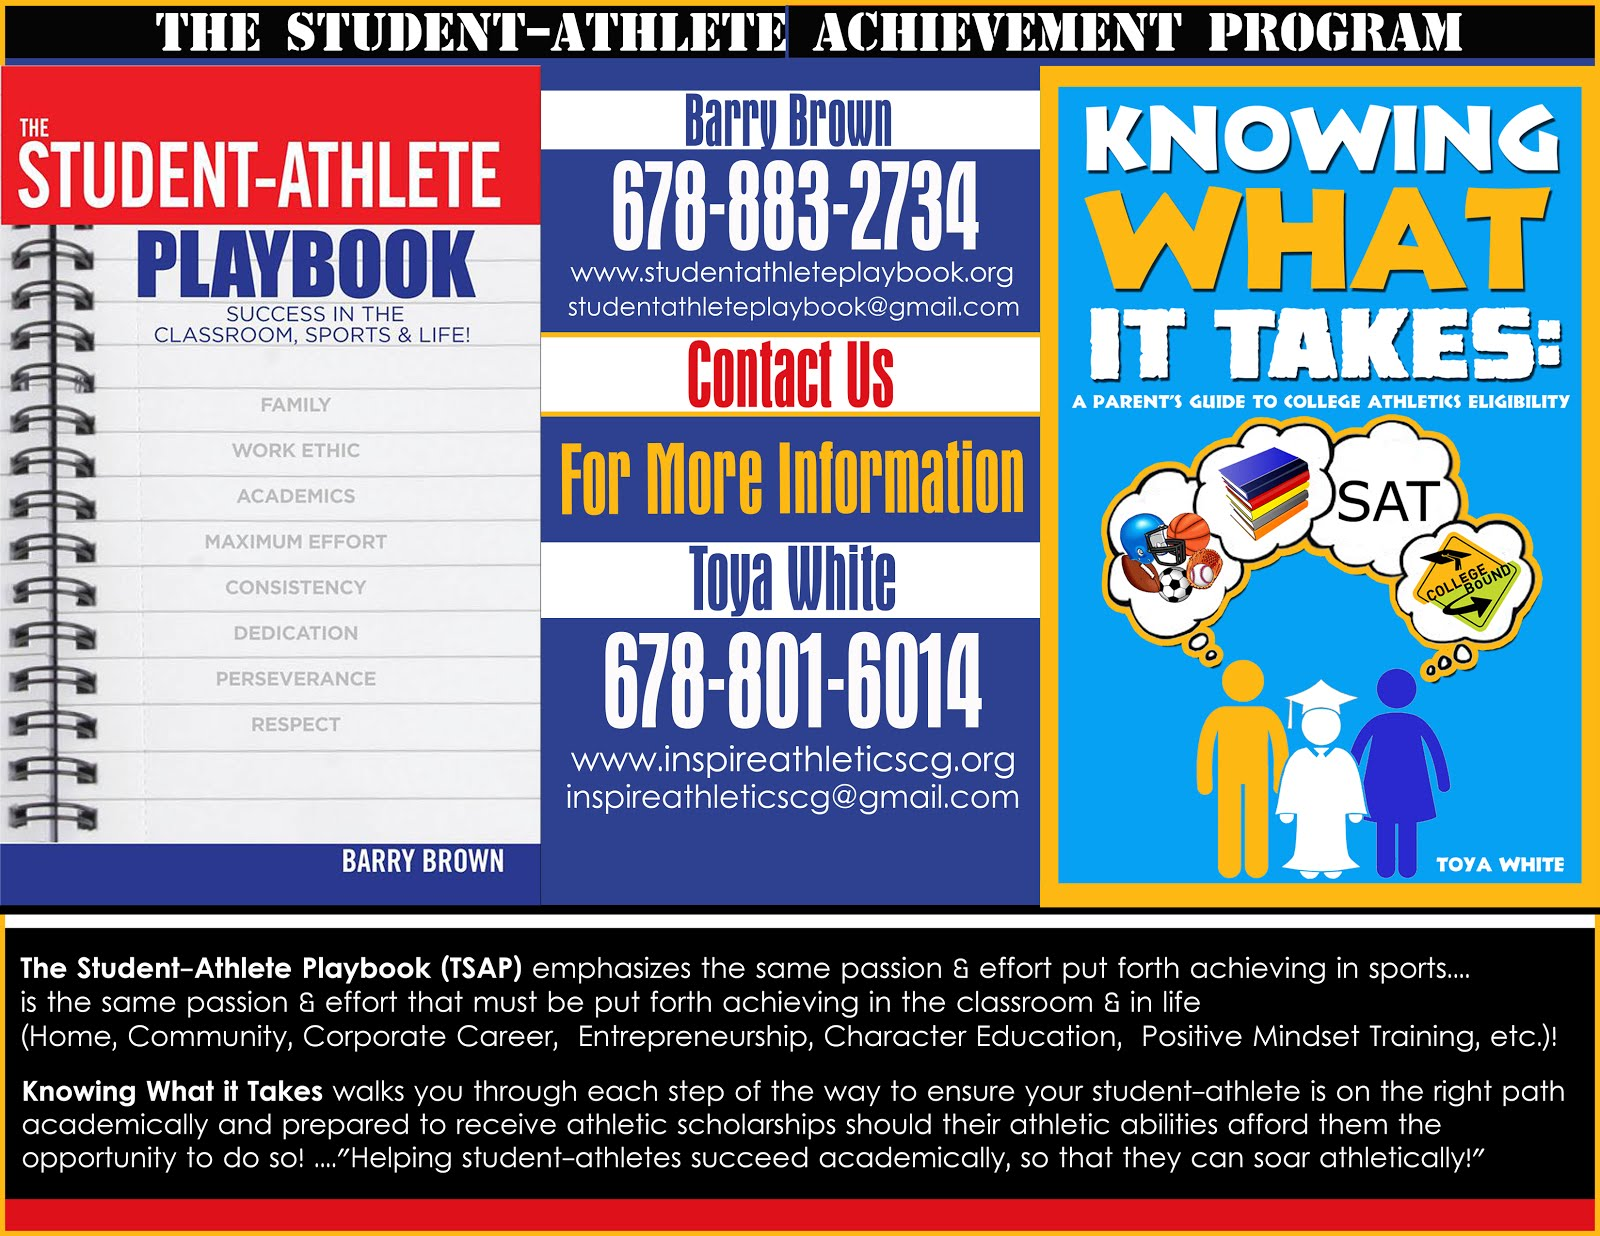 THE STUDENT-ATHLETE ACHIEVEMENT PROGRAM/YOUTH EDUCATION AND SPORTS (TSAAP/YES)